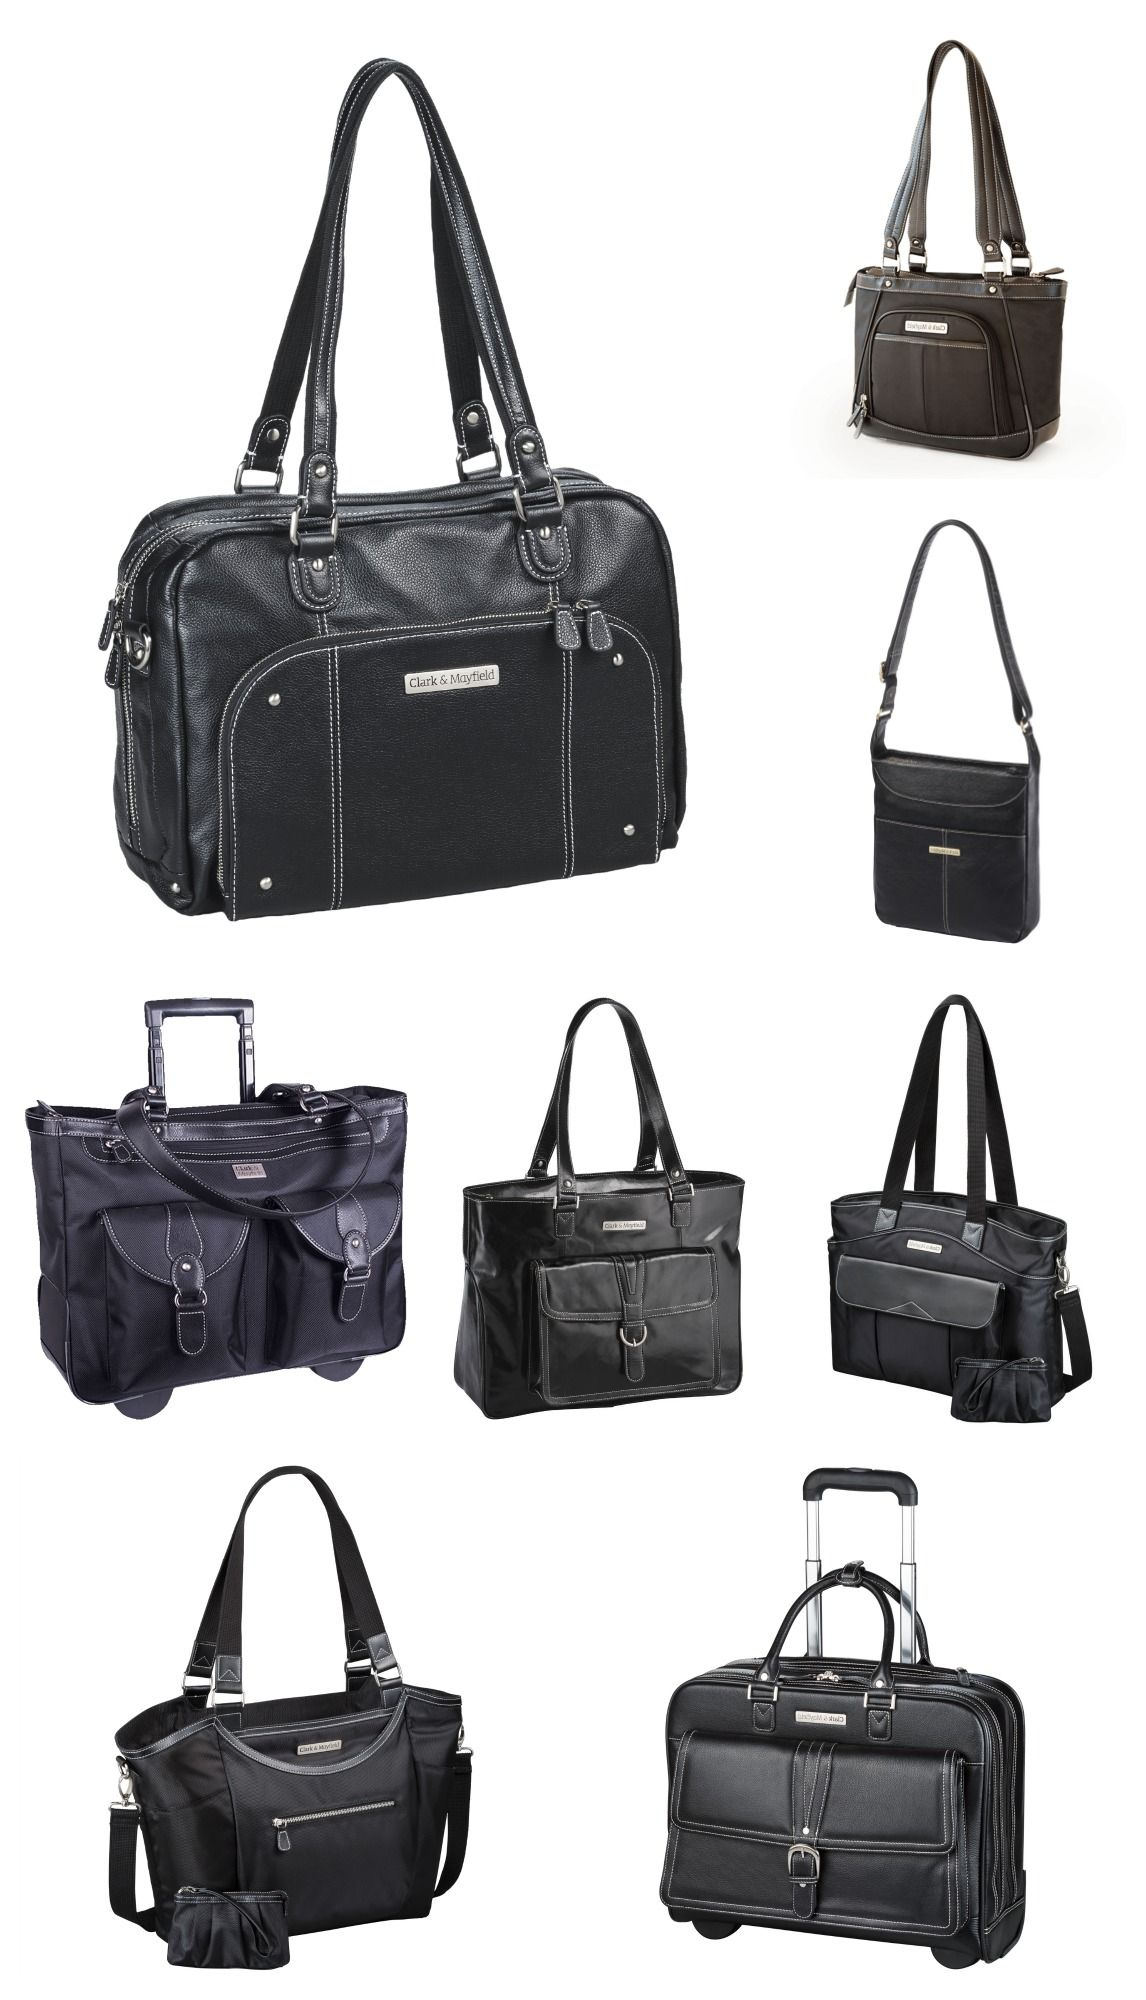 Stylish and functional carry-all laptop and tablet bags for women - Clark &  Mayfield collections pictured in black